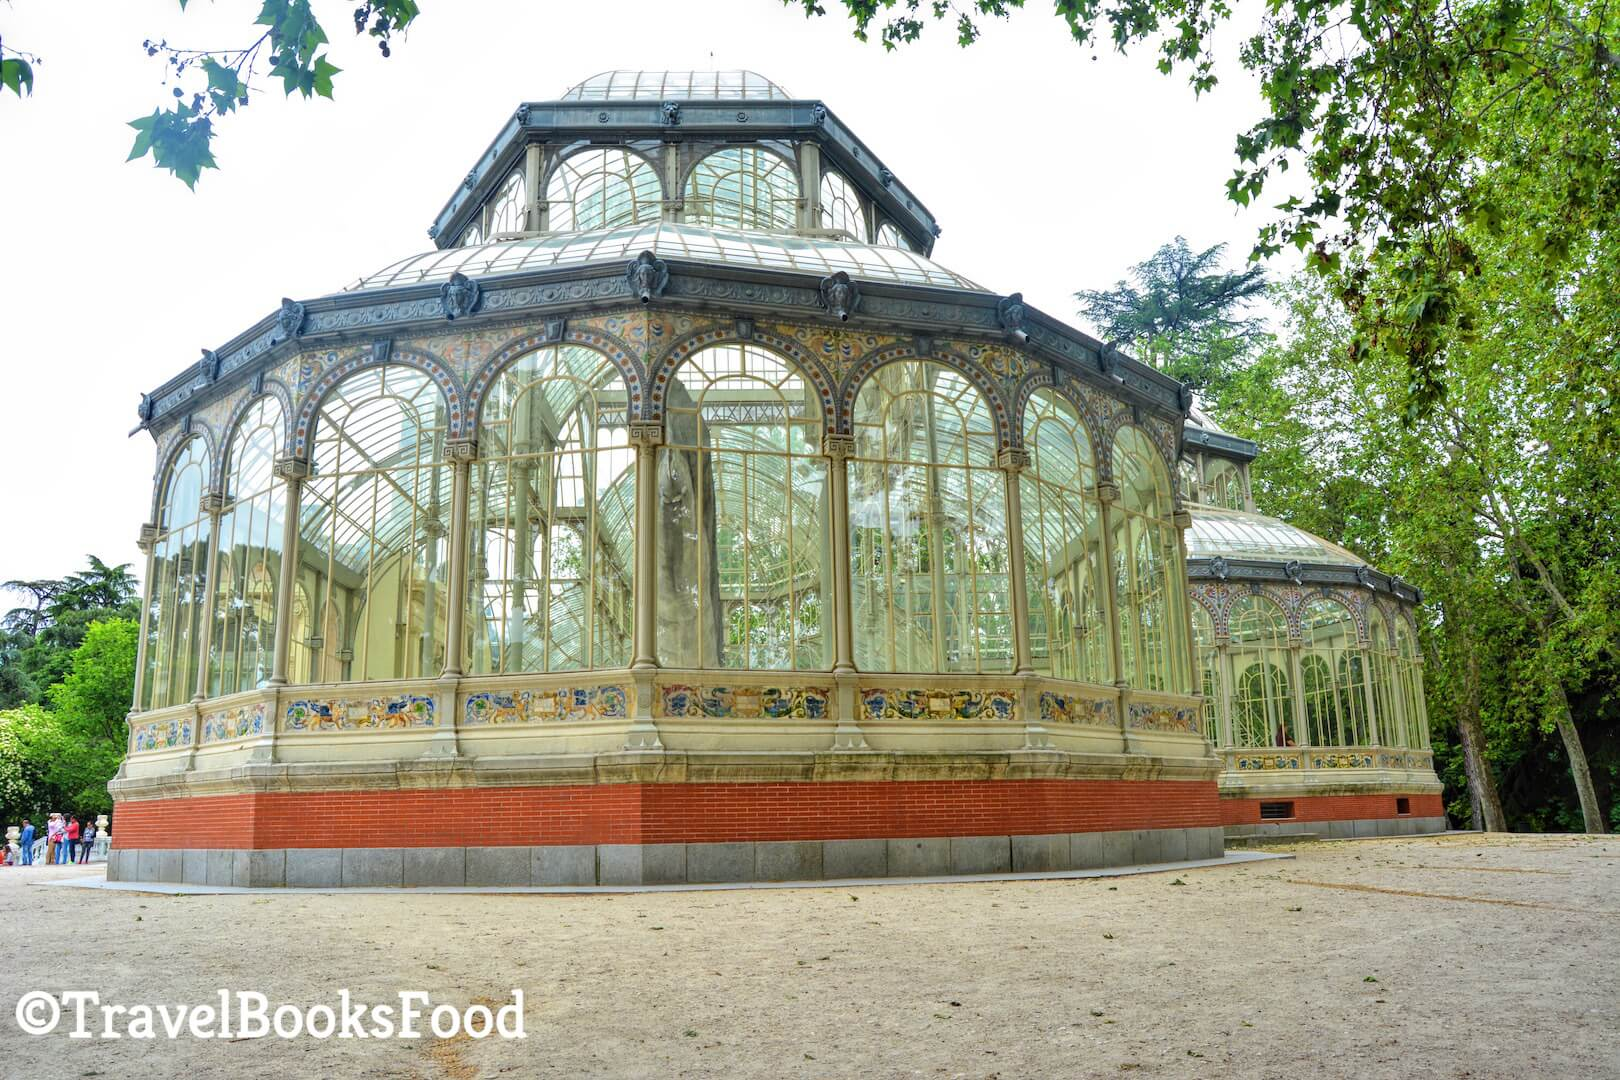 A photo of the crystal glass house in Madrid